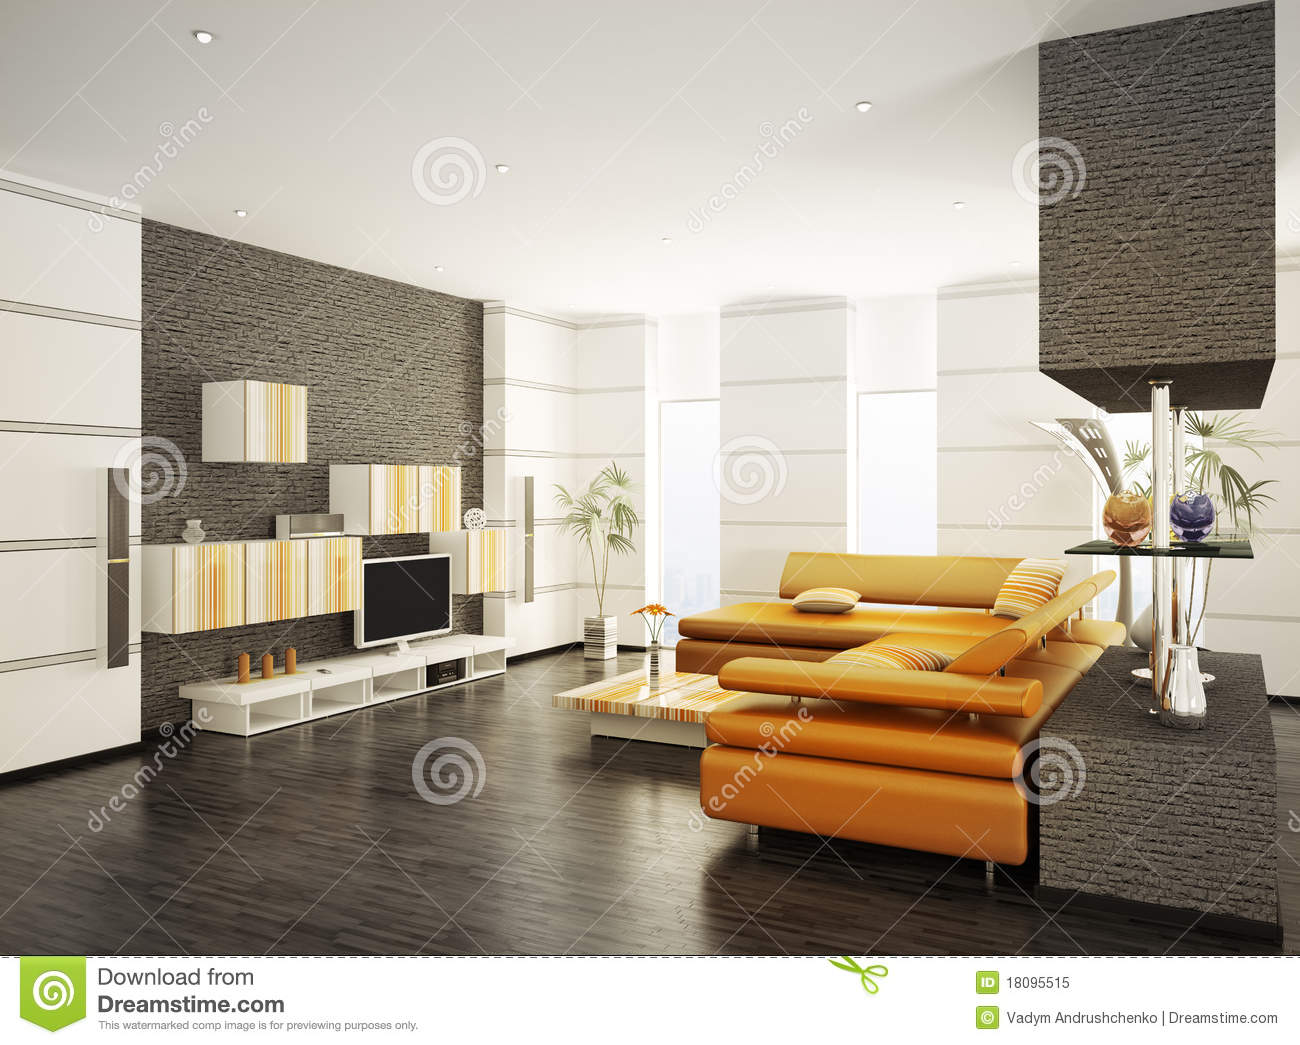 Modern living room interior 3d render royalty free stock for Modern drawing room interior